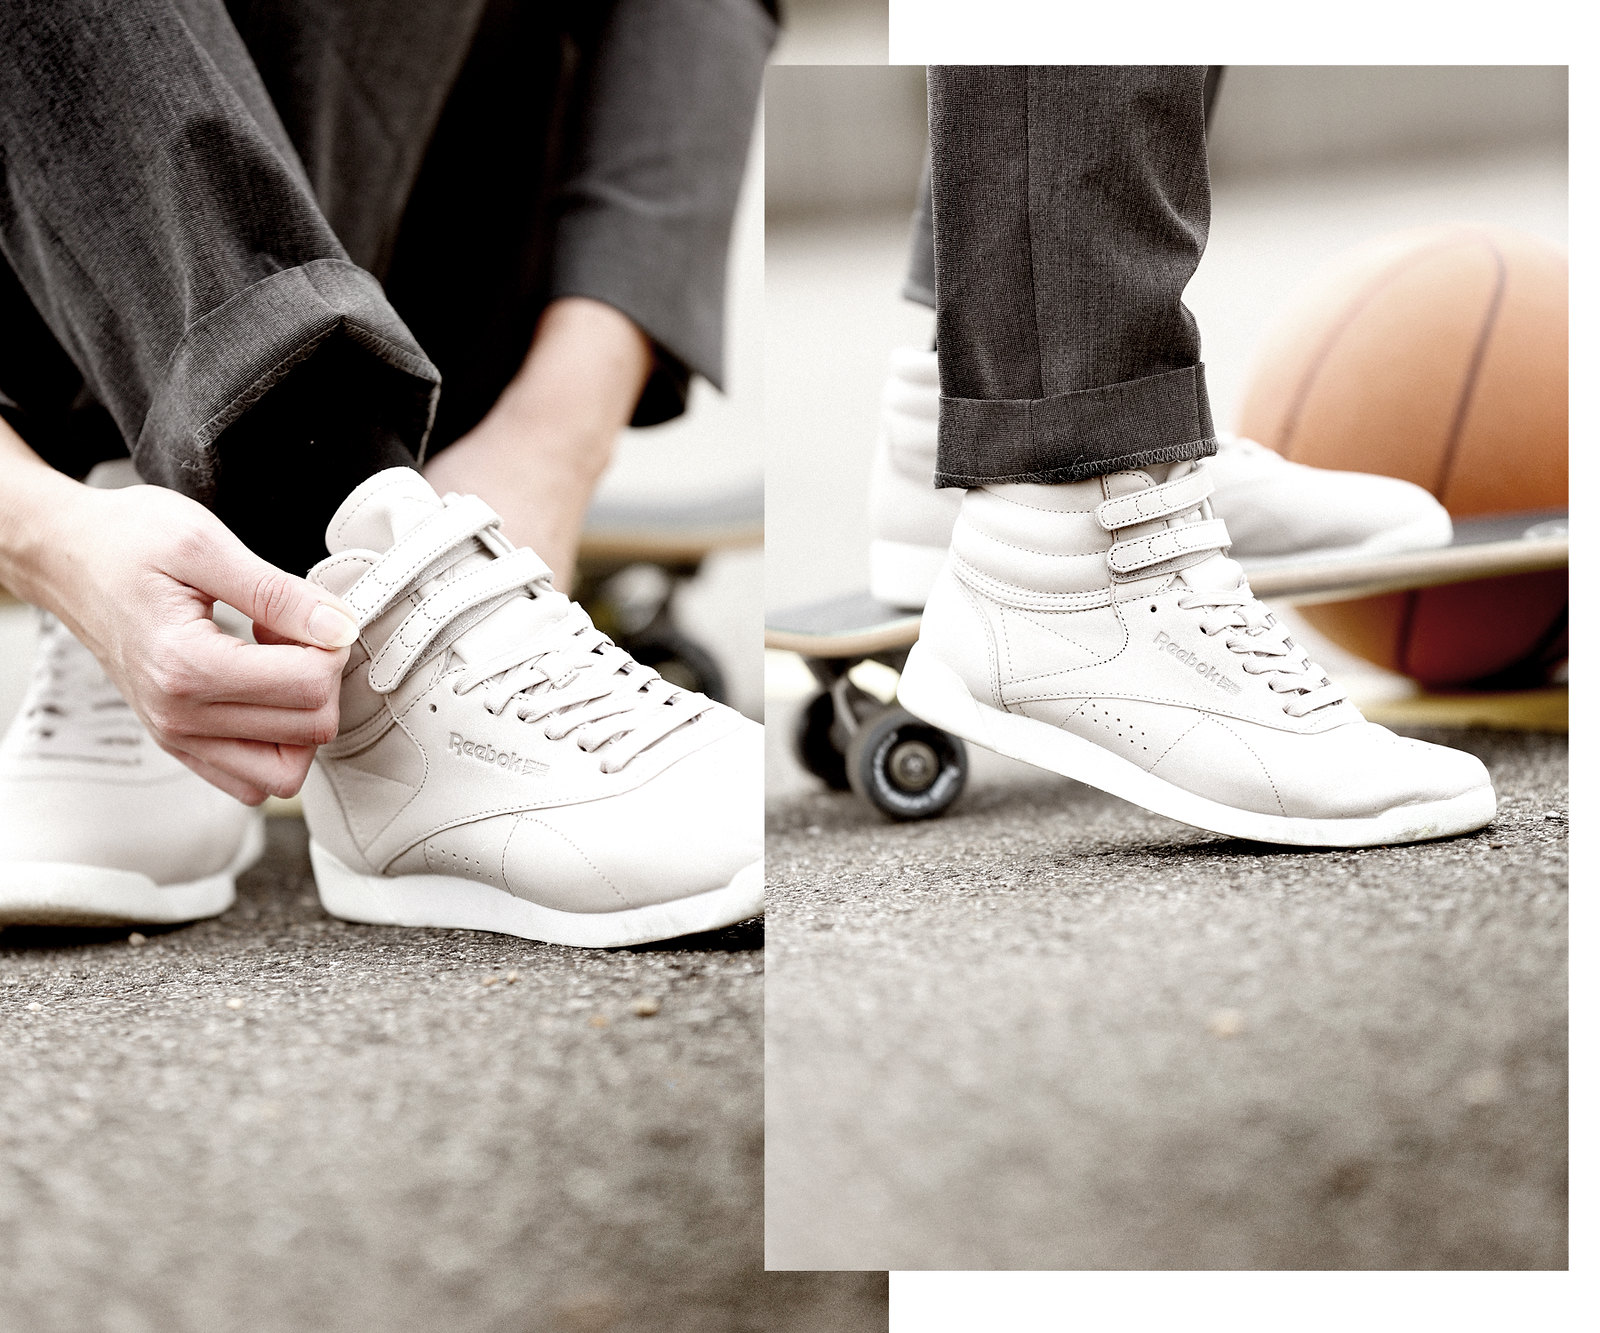 outfit reebok classics face stockholm sneakers hi rise basketball sports skateboard grey suit outfit business casual sporty look lookbook magentaskateboards titus düsseldorf ricarda schernus modeblogger nrw photography playground 1